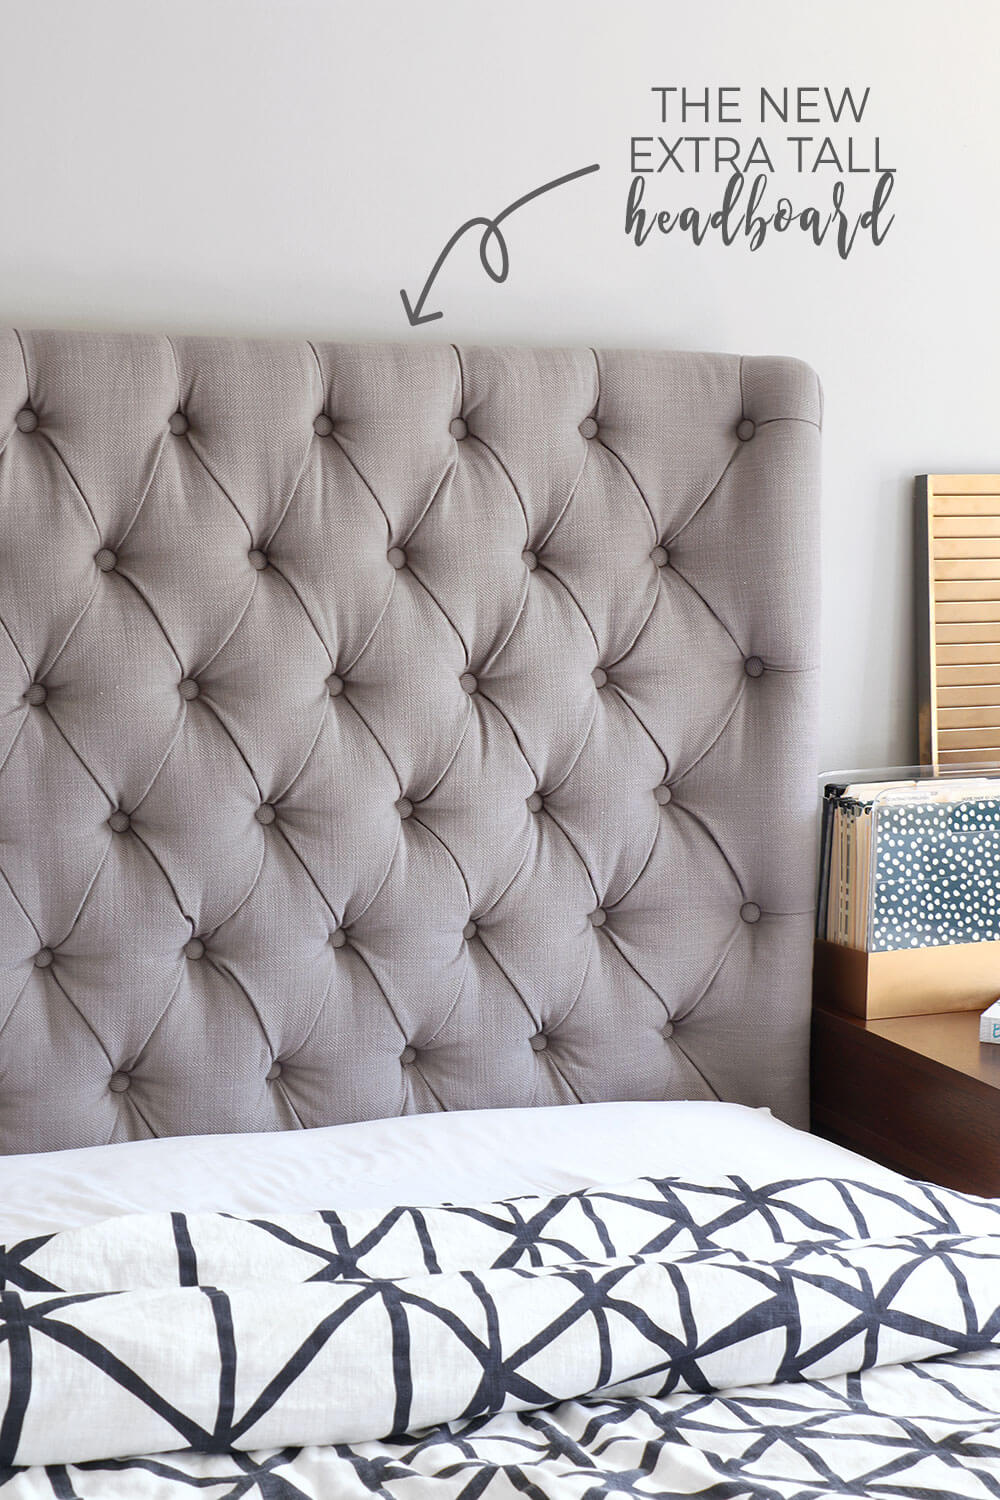 Curved-diamond-tufted-headboard